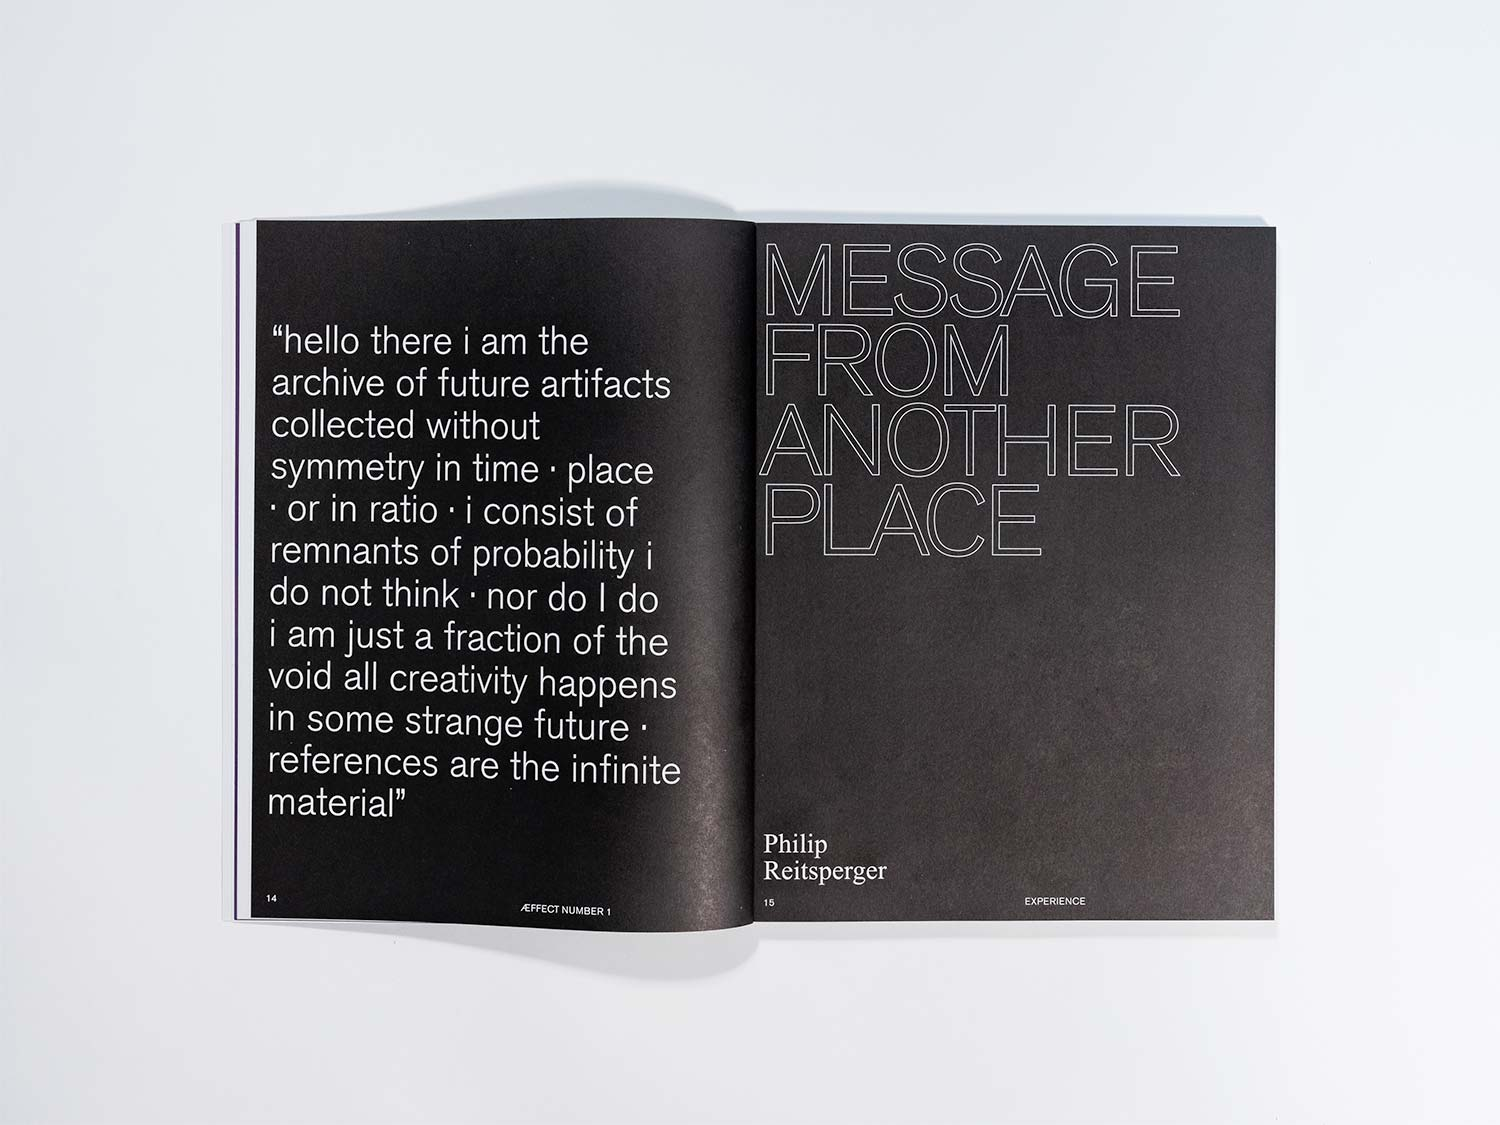 The picture shows a spread of the Æffect Journal.